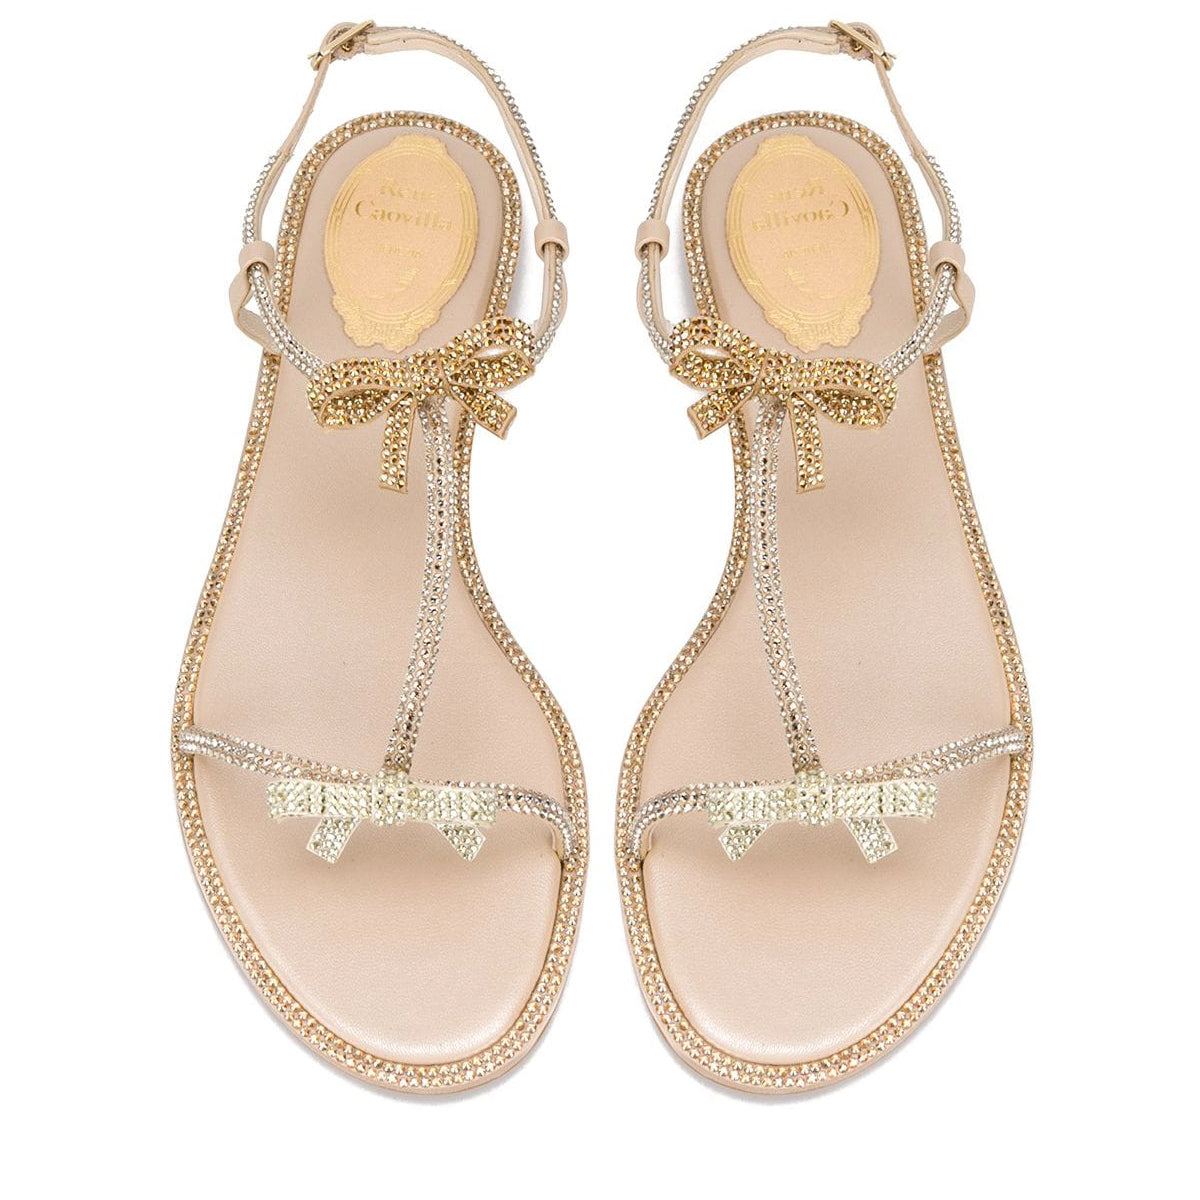 Caterina Double Bow Flat Sandals